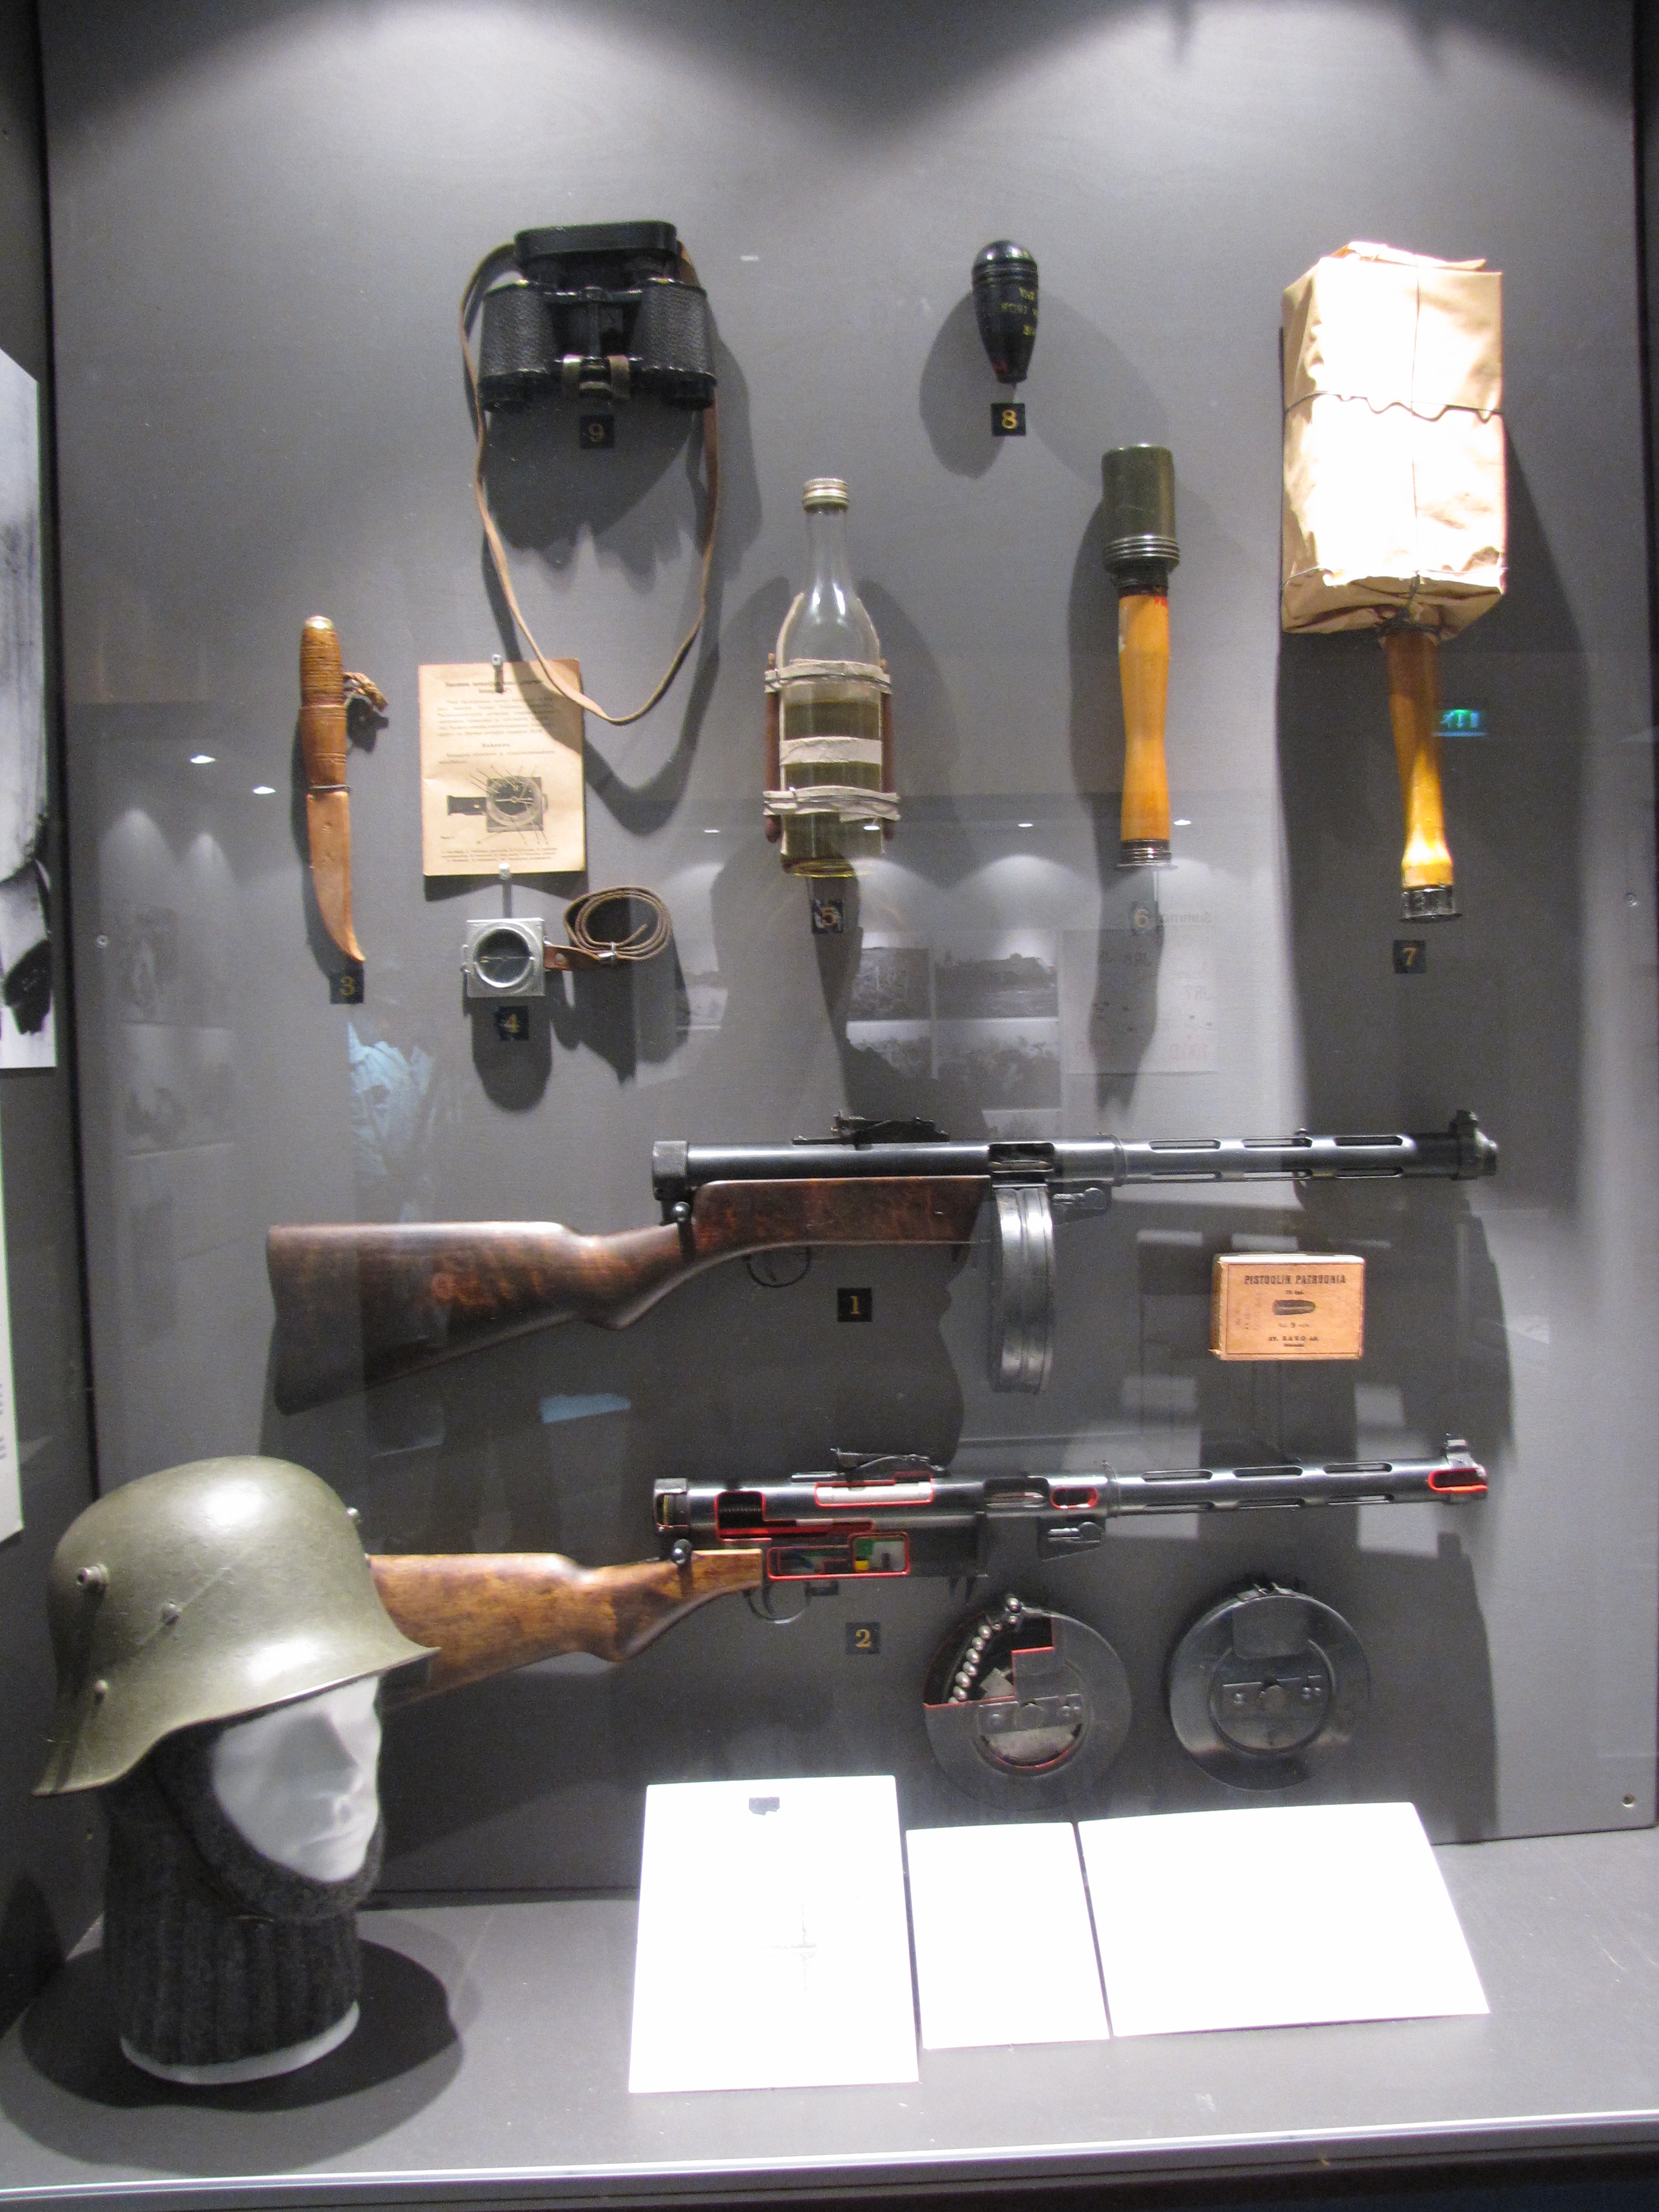 File:Finnish army weapons and equipment JPG - Wikimedia Commons